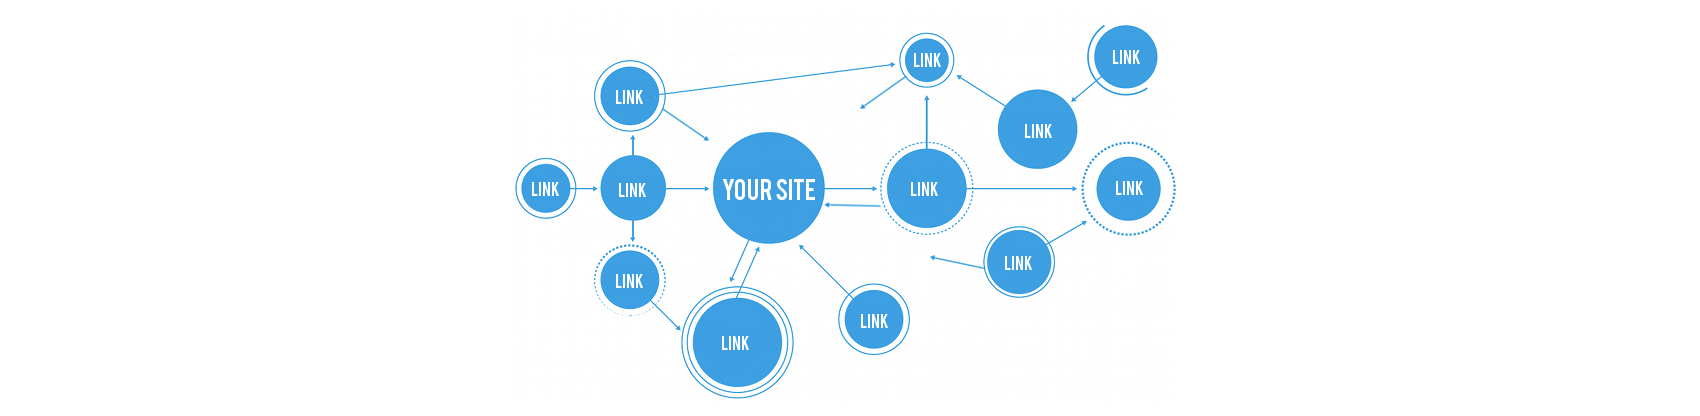 Advance Way to Link Building without any spamming